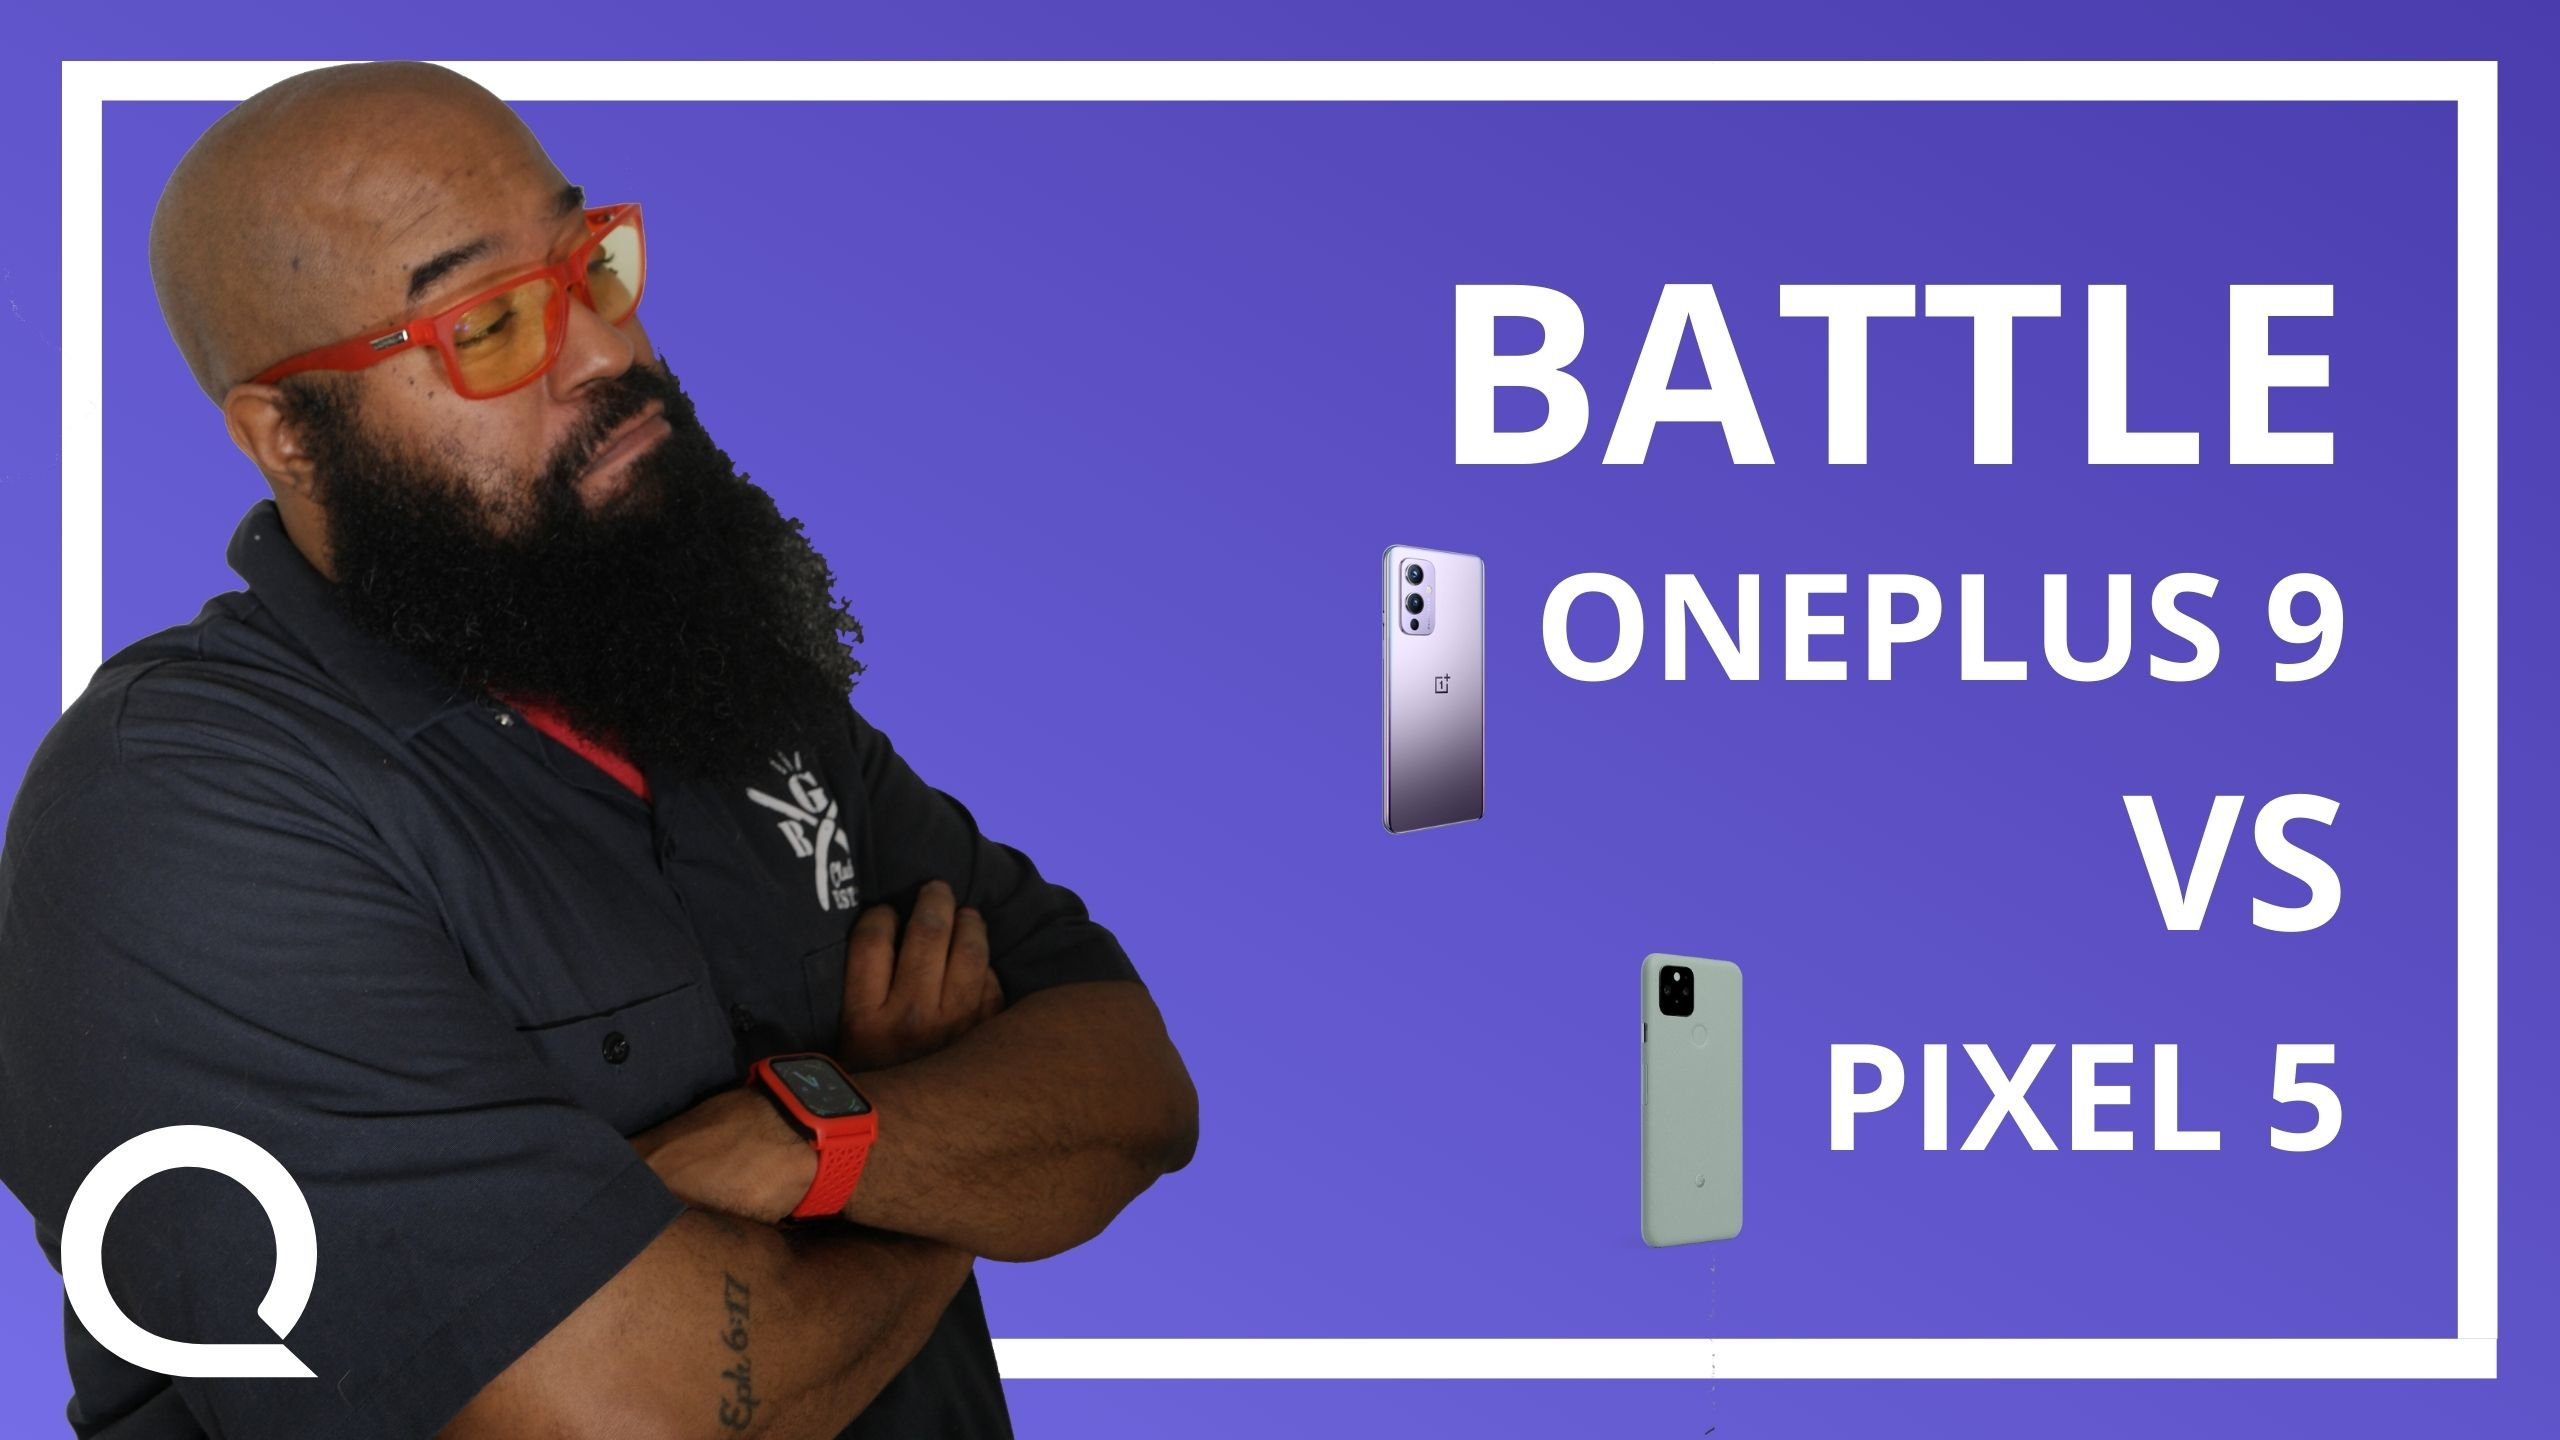 """A man is folding his arms and surveying text """"Battle Oneplus 9 VS Pixel 5"""" and two corresponding smartphones."""